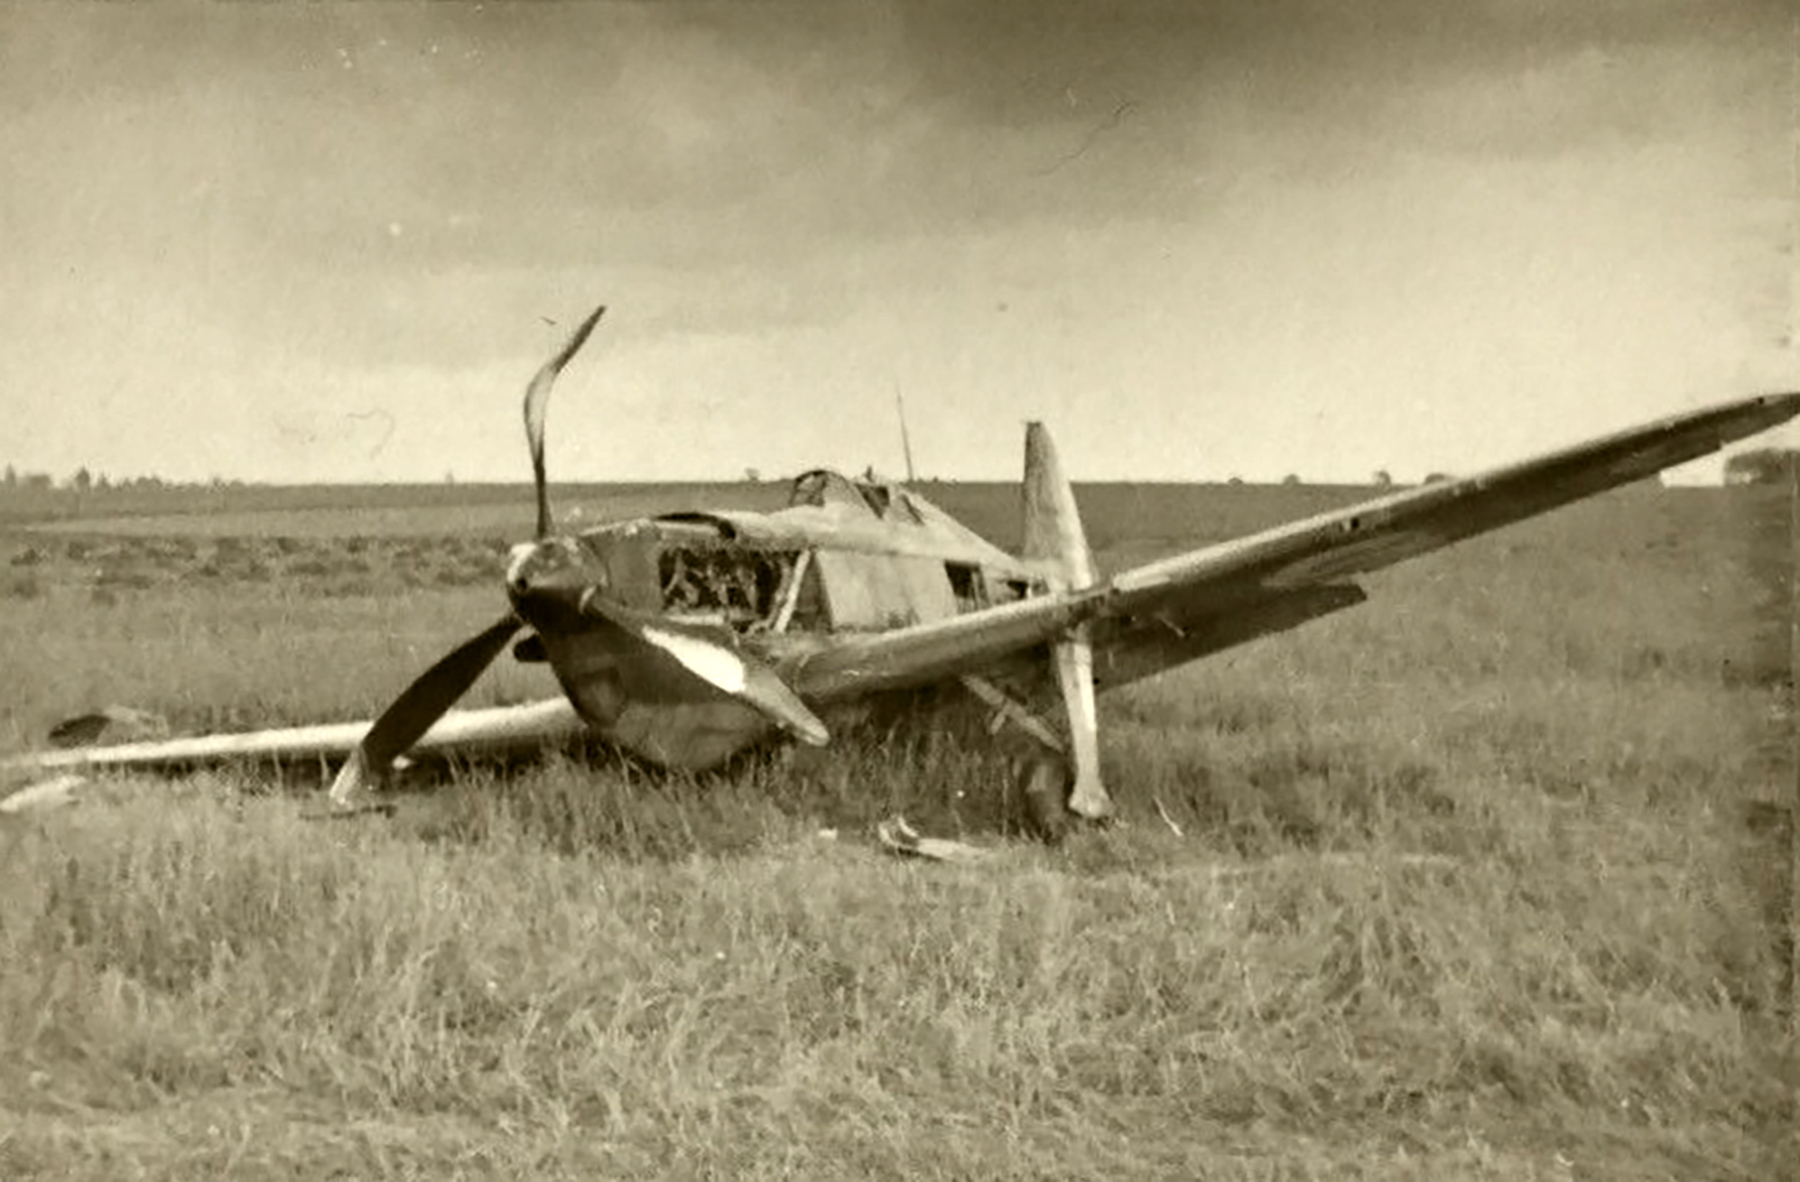 French Airforce Dewoitine D 520 force landed battle of France May 1940 ebay 02